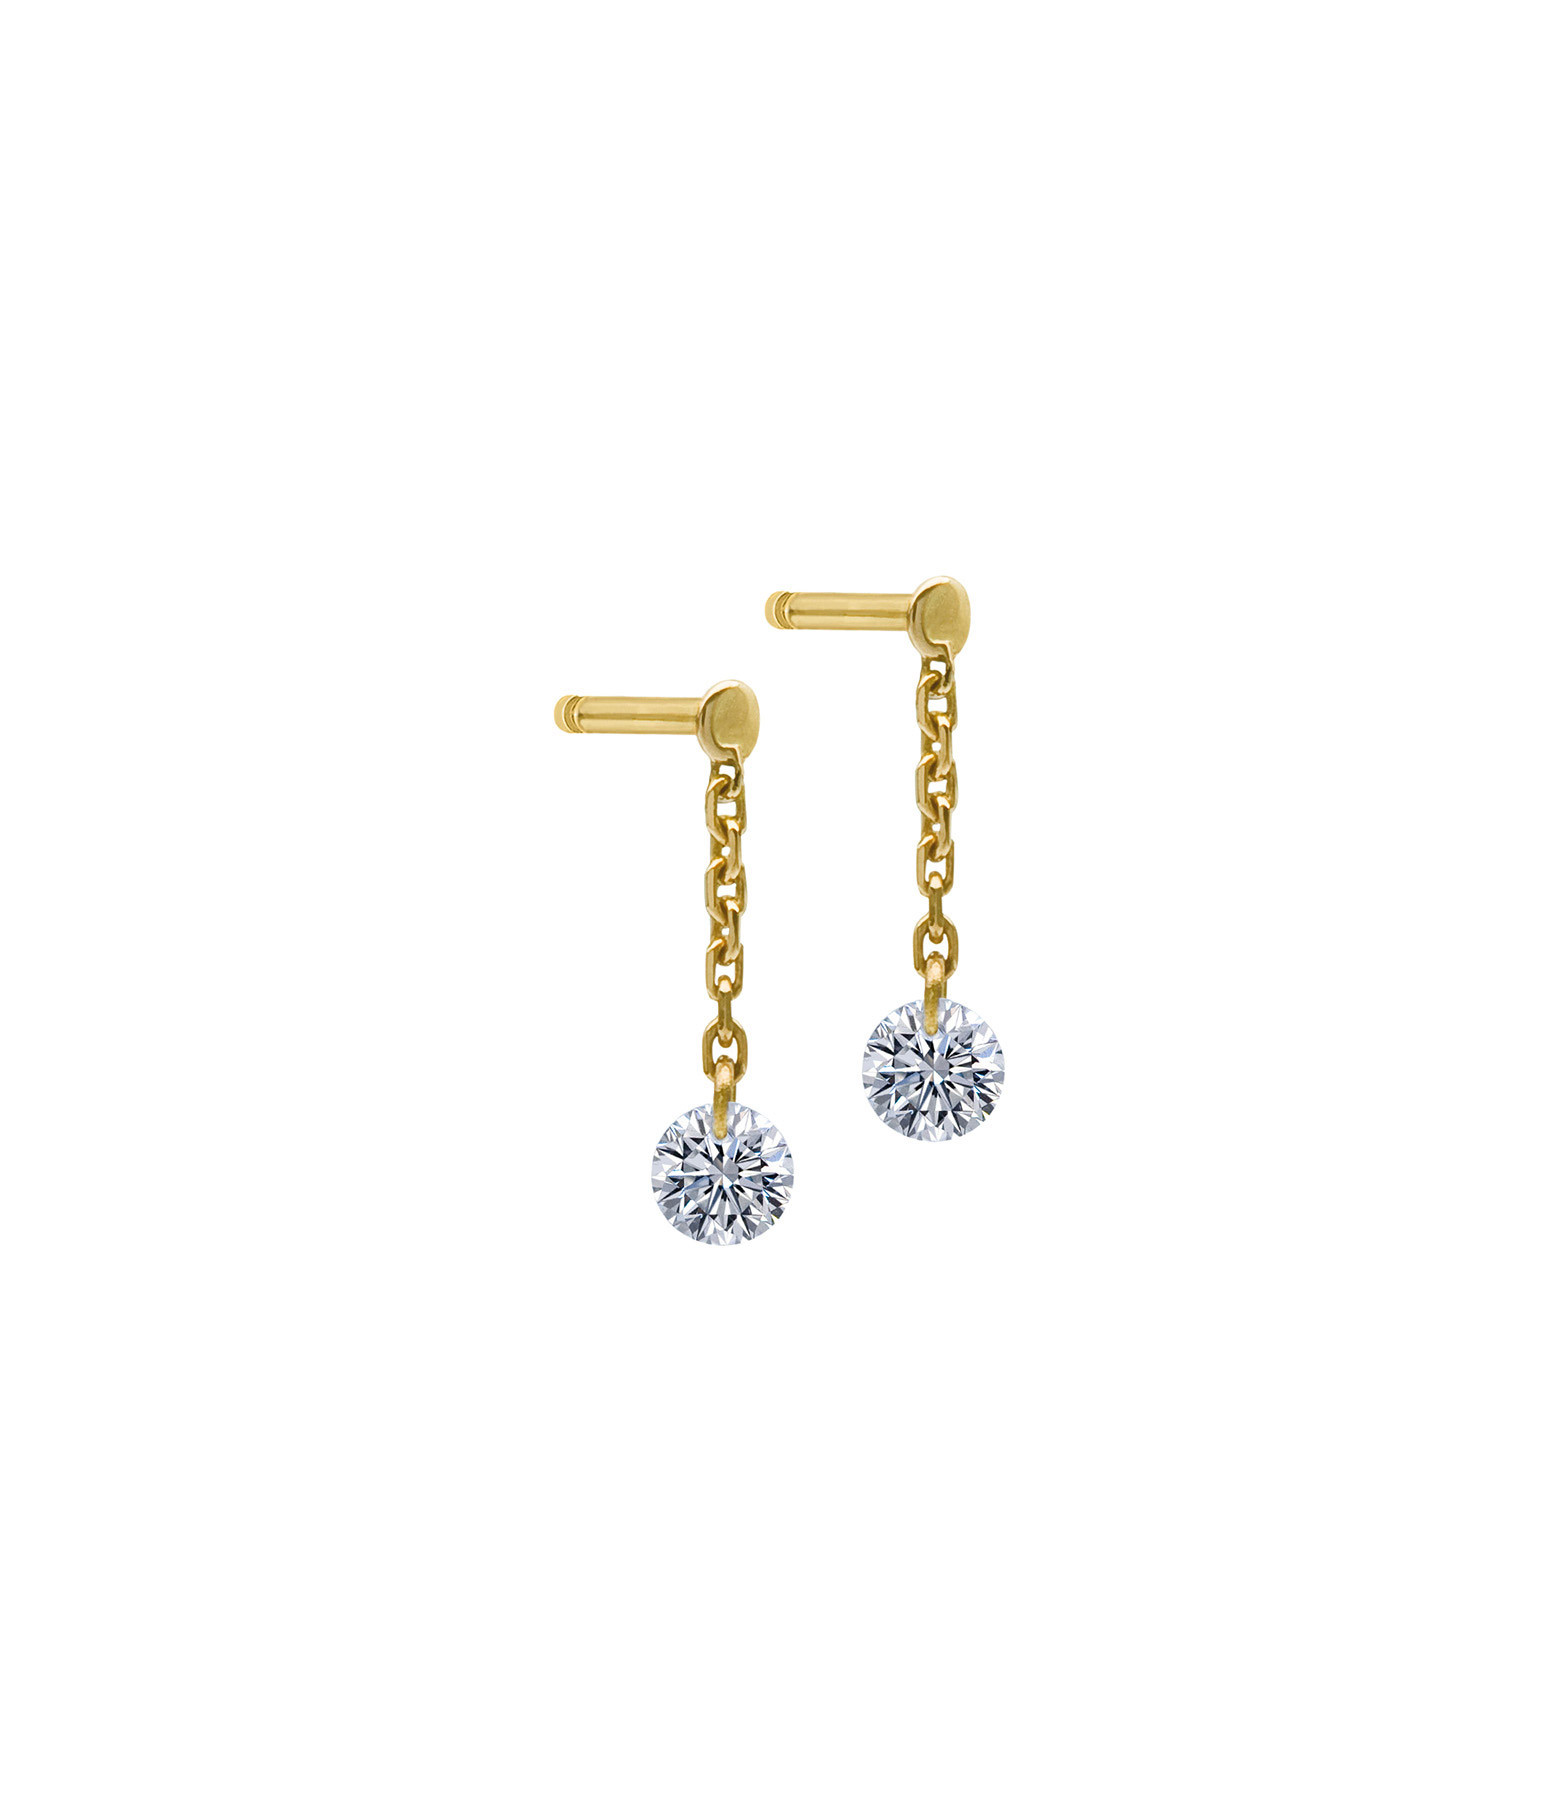 LA BRUNE & LA BLONDE - Boucles d'oreilles 360° Diamant Brillant Or Jaune